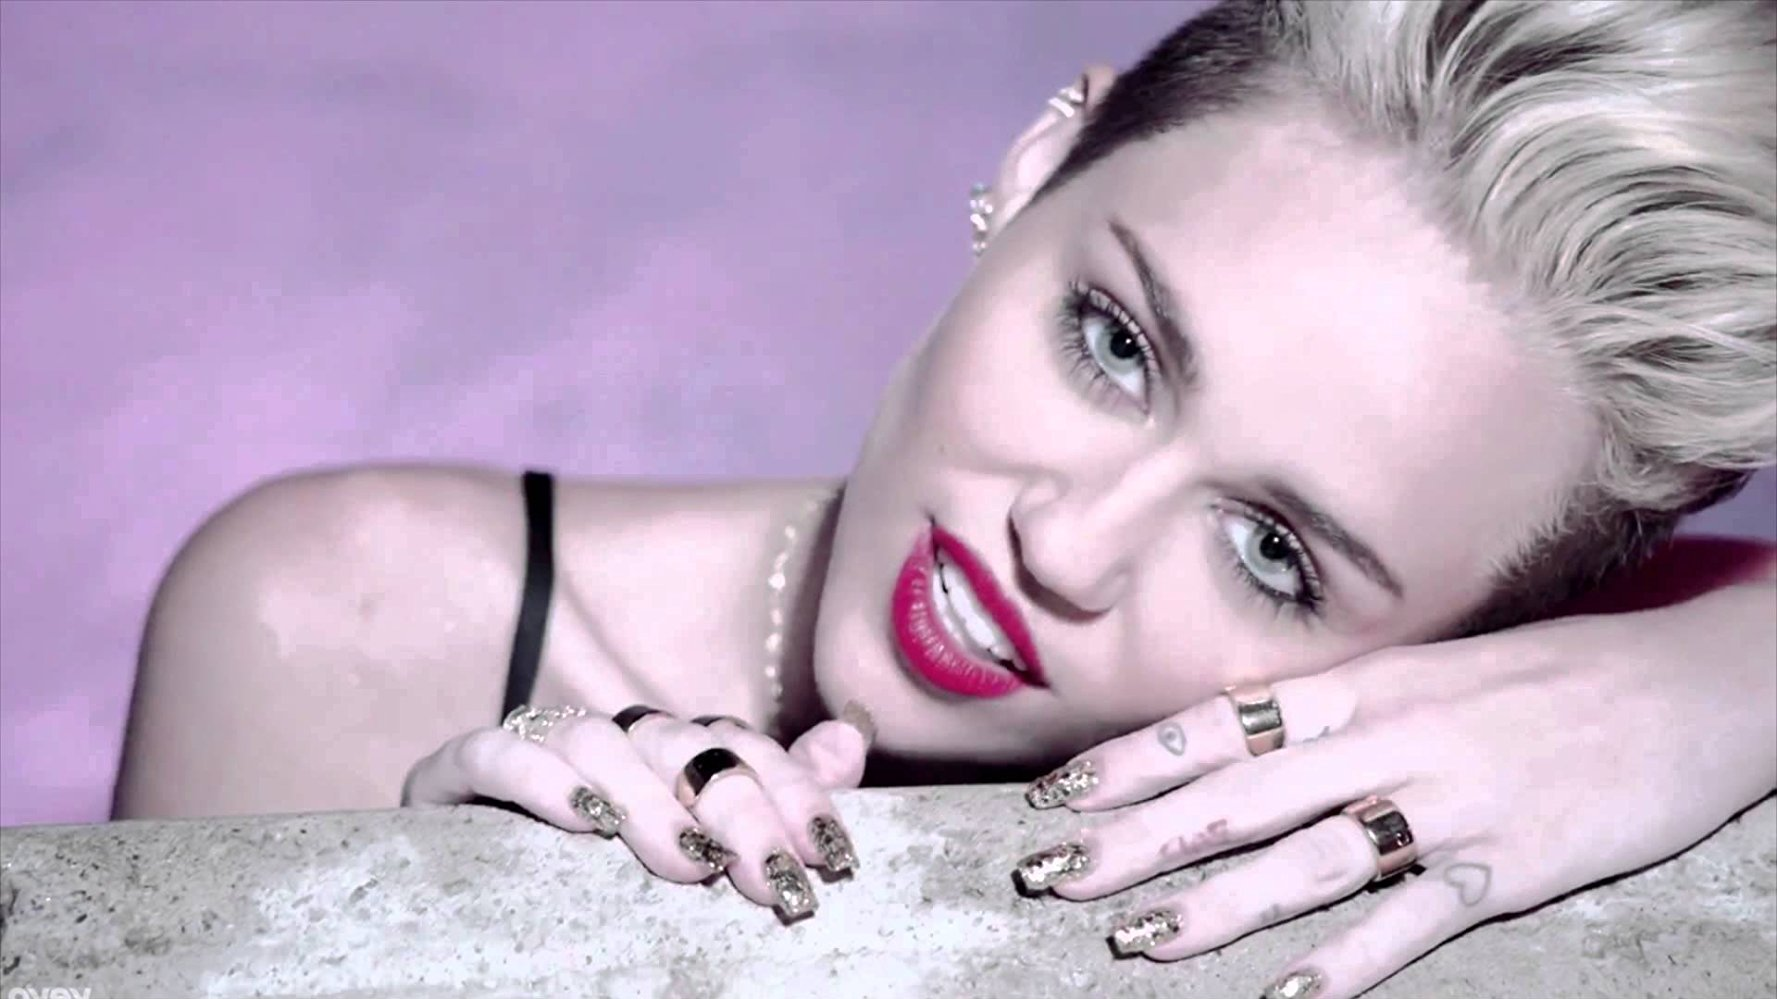 Miley Cyrus Tersandung Masalah Hukum Gara-Gara Single 'We Can't Stop'